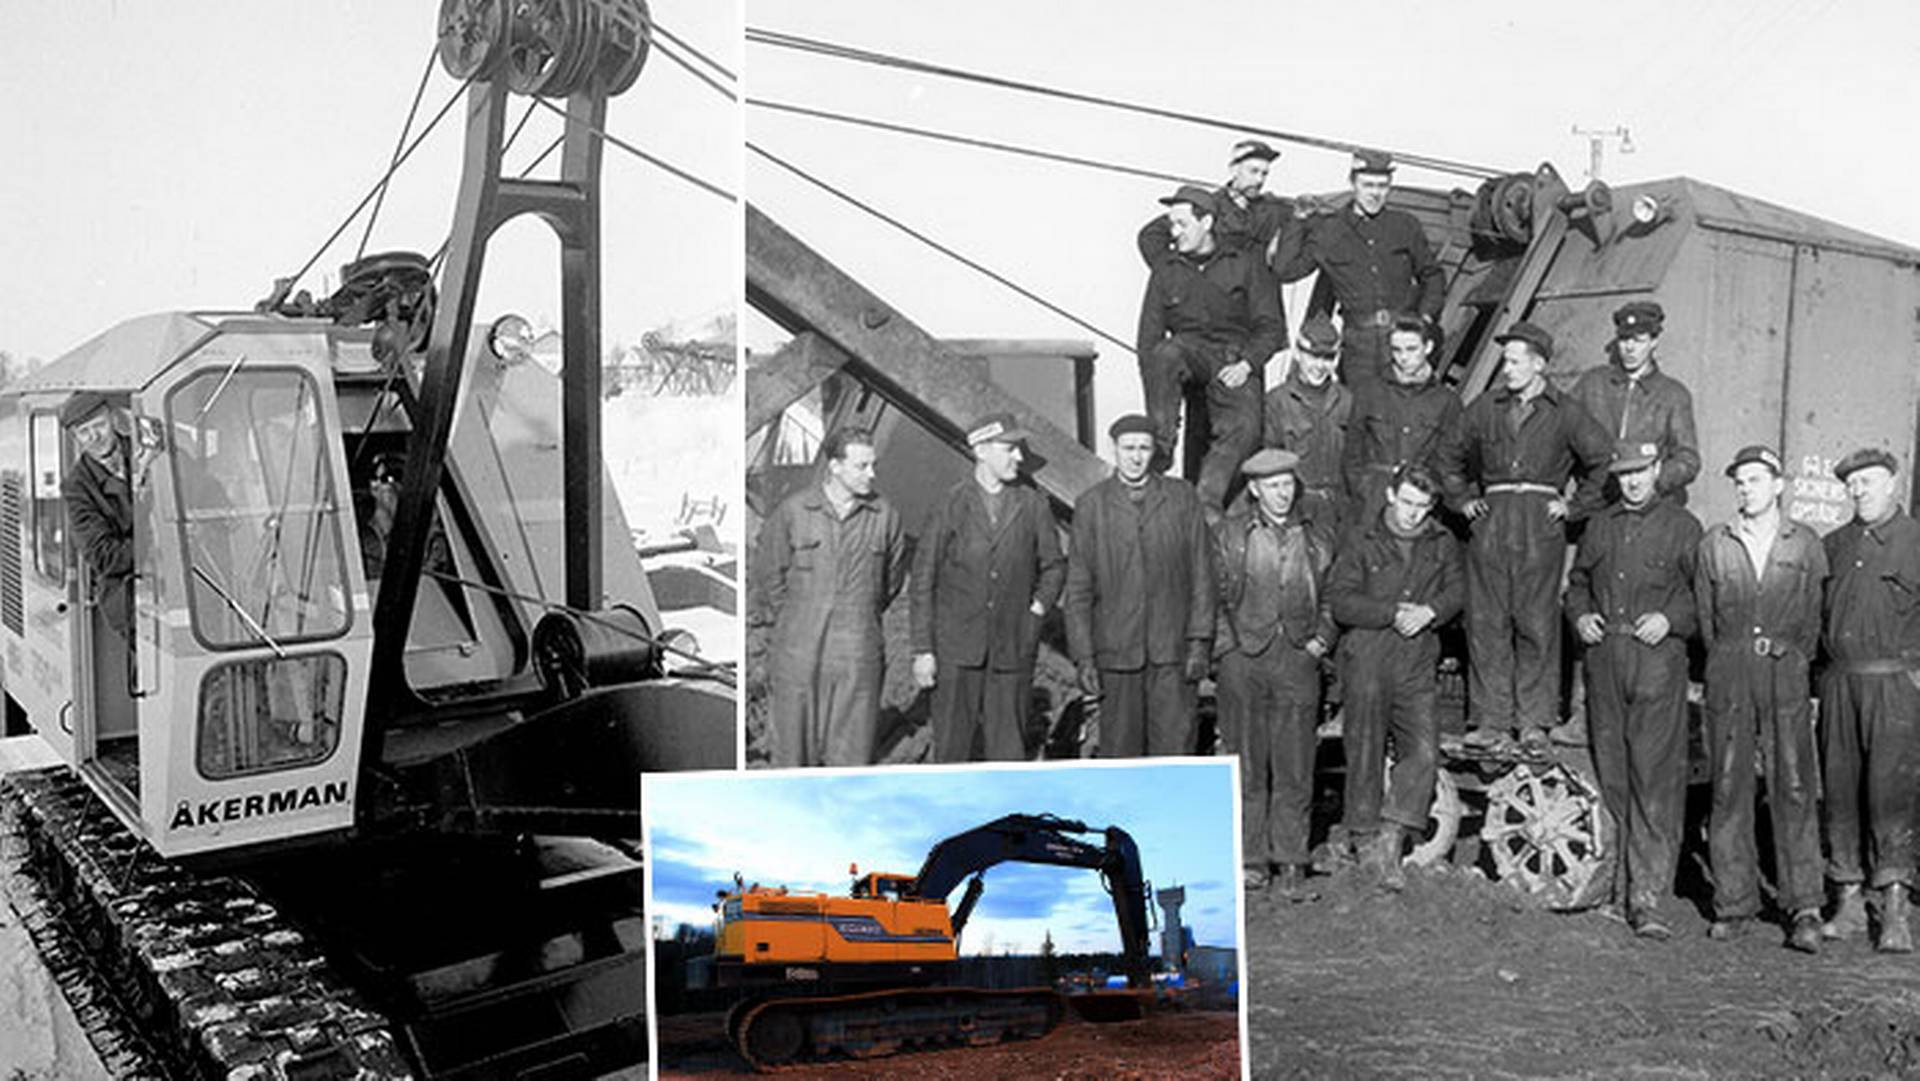 The excavator created a strong community